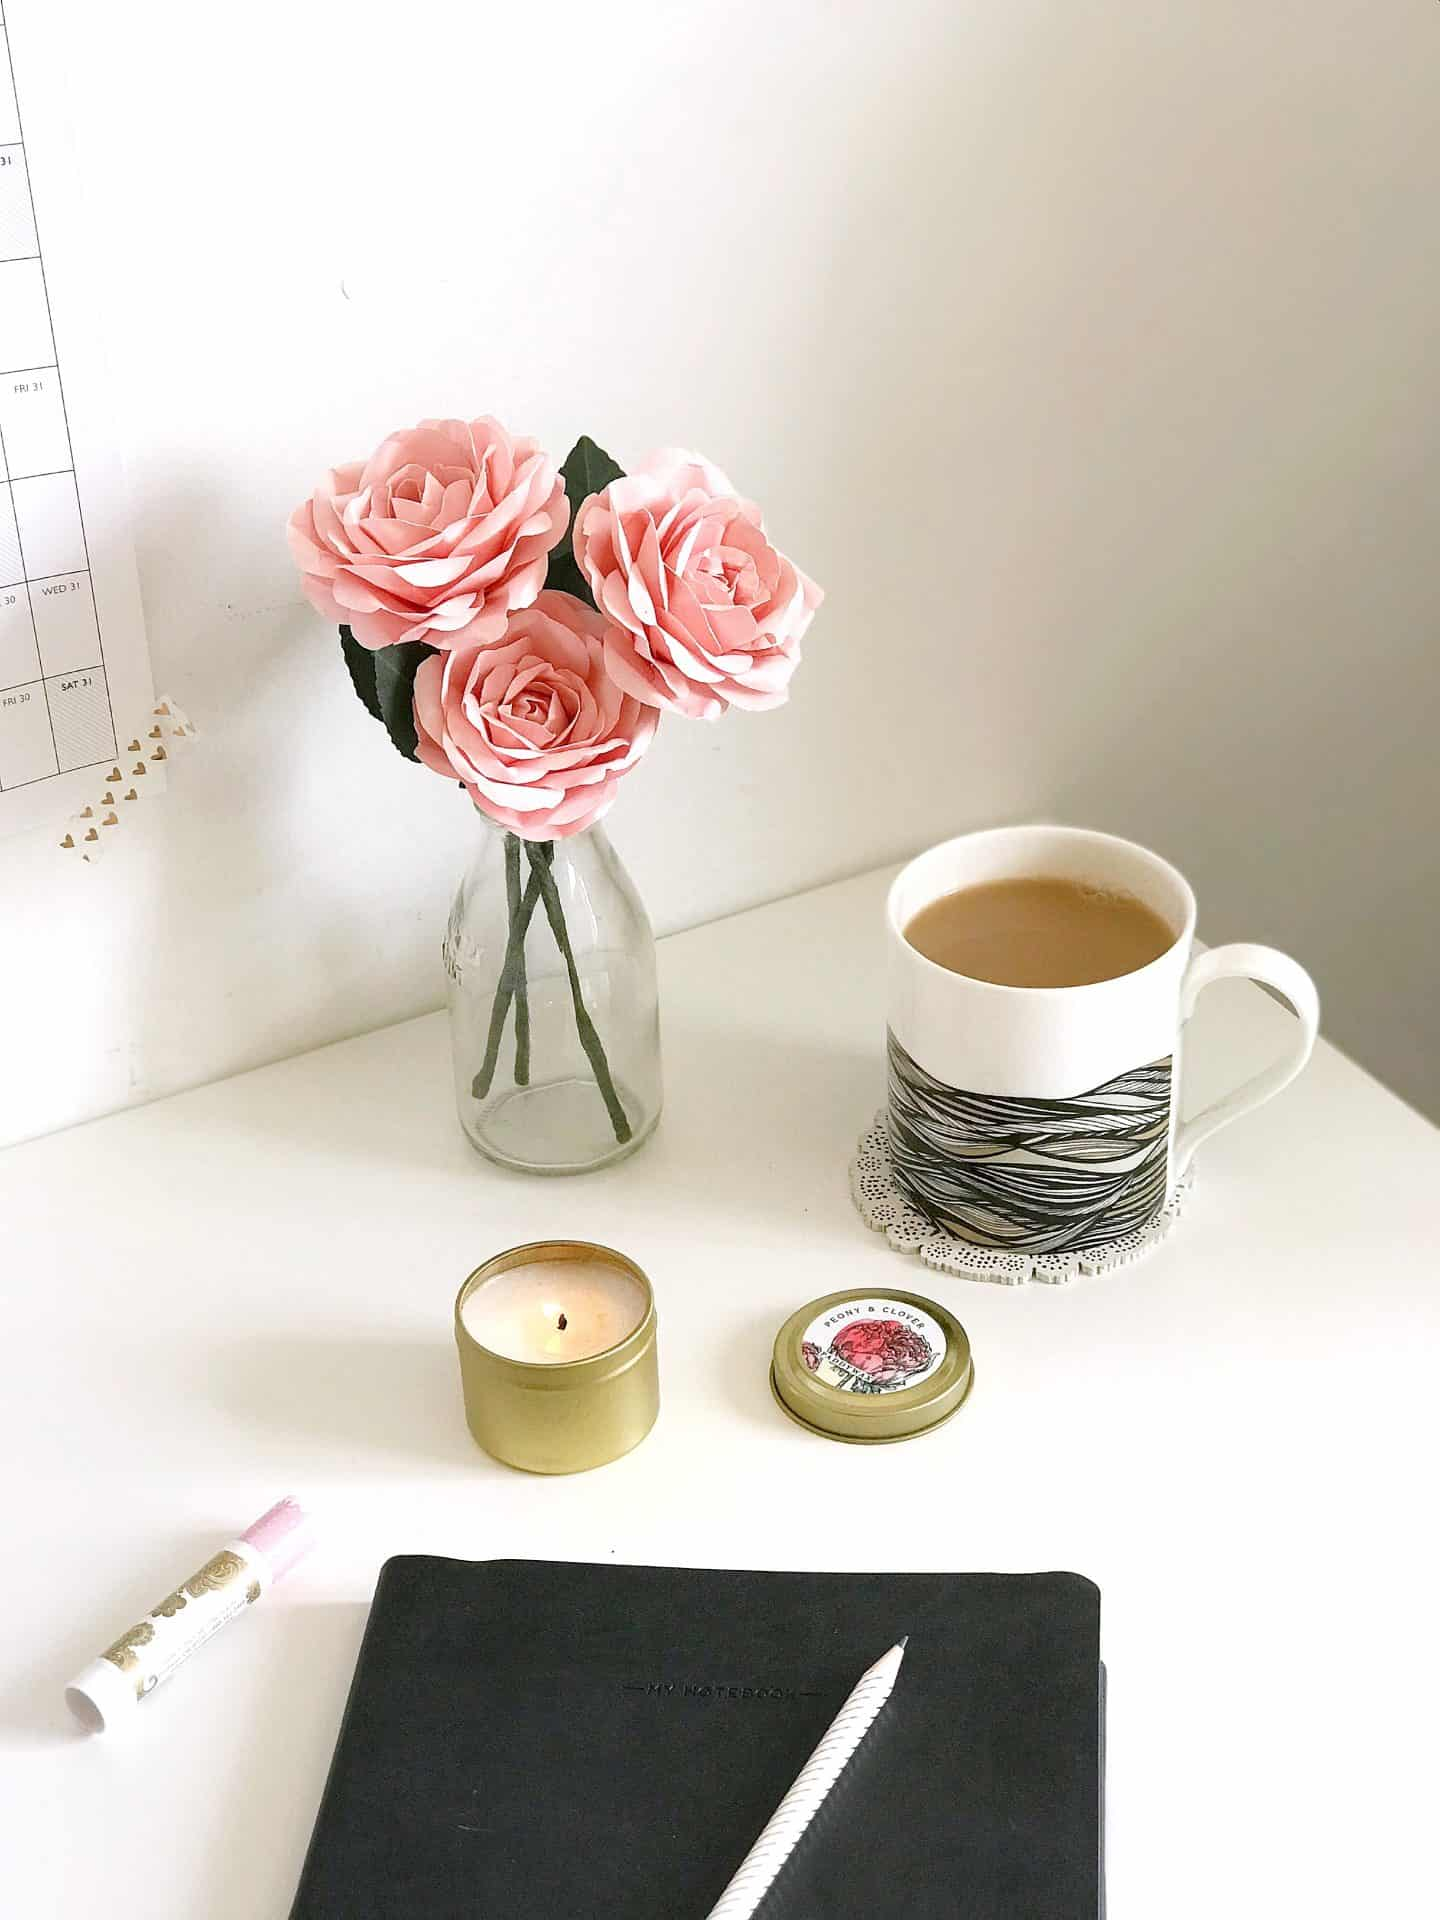 Black notebook, pink roses, candle and black and white mug